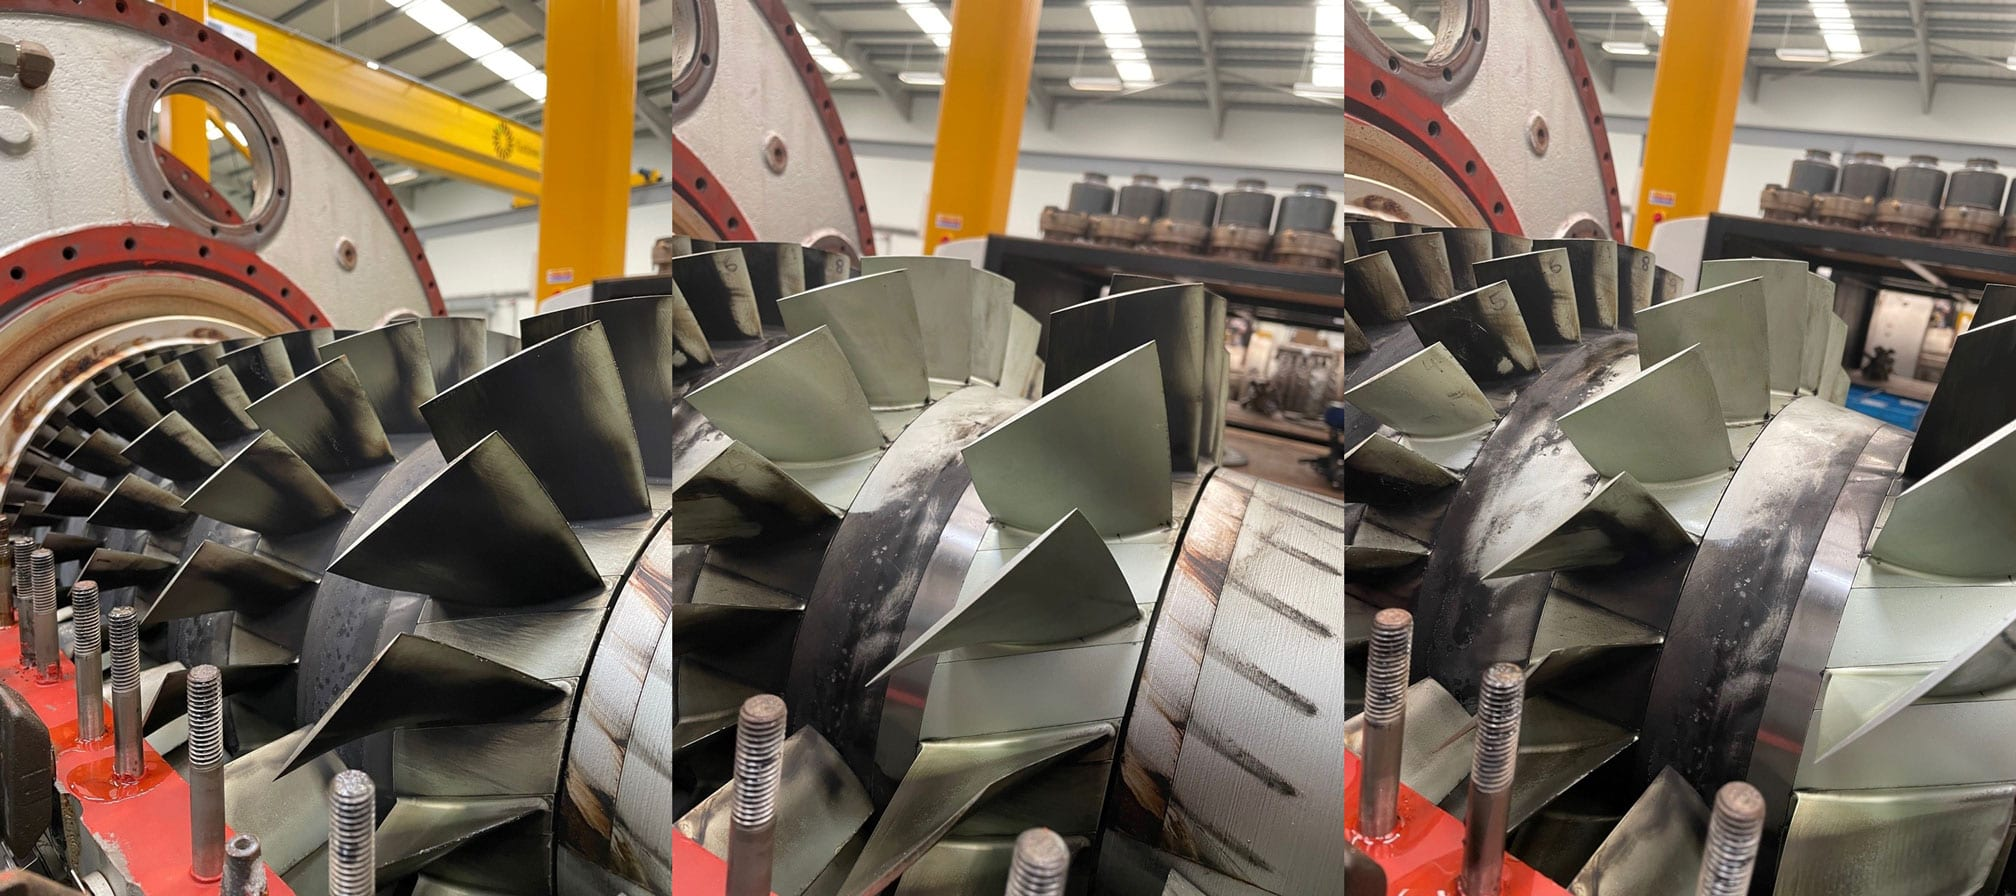 Typhoon Engine for Power Generation coated in Indestructible Paint's Chrome Free CF600 Protective Coating